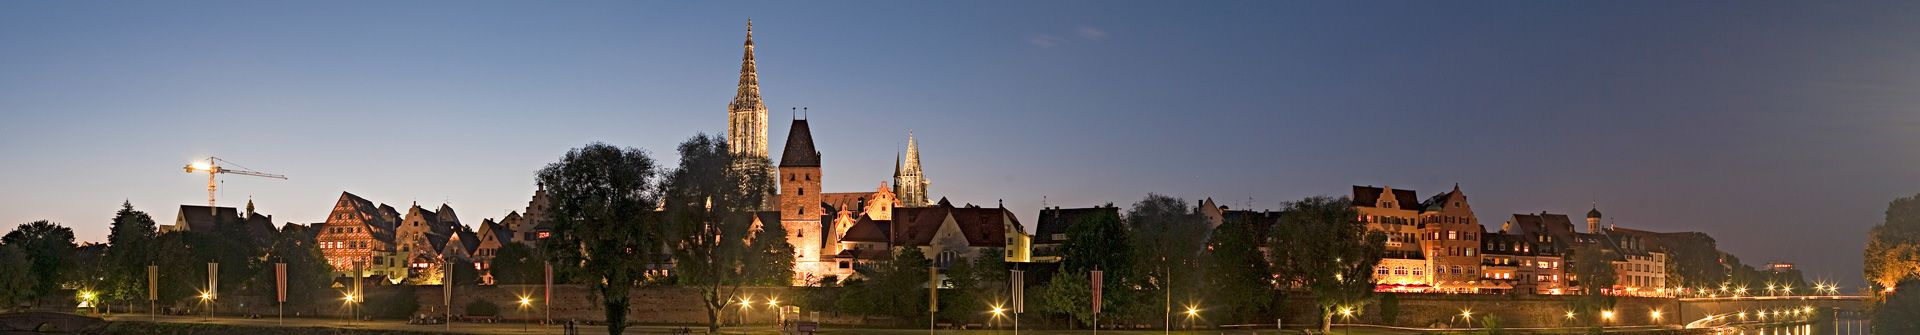 Panoramic view of Ulm